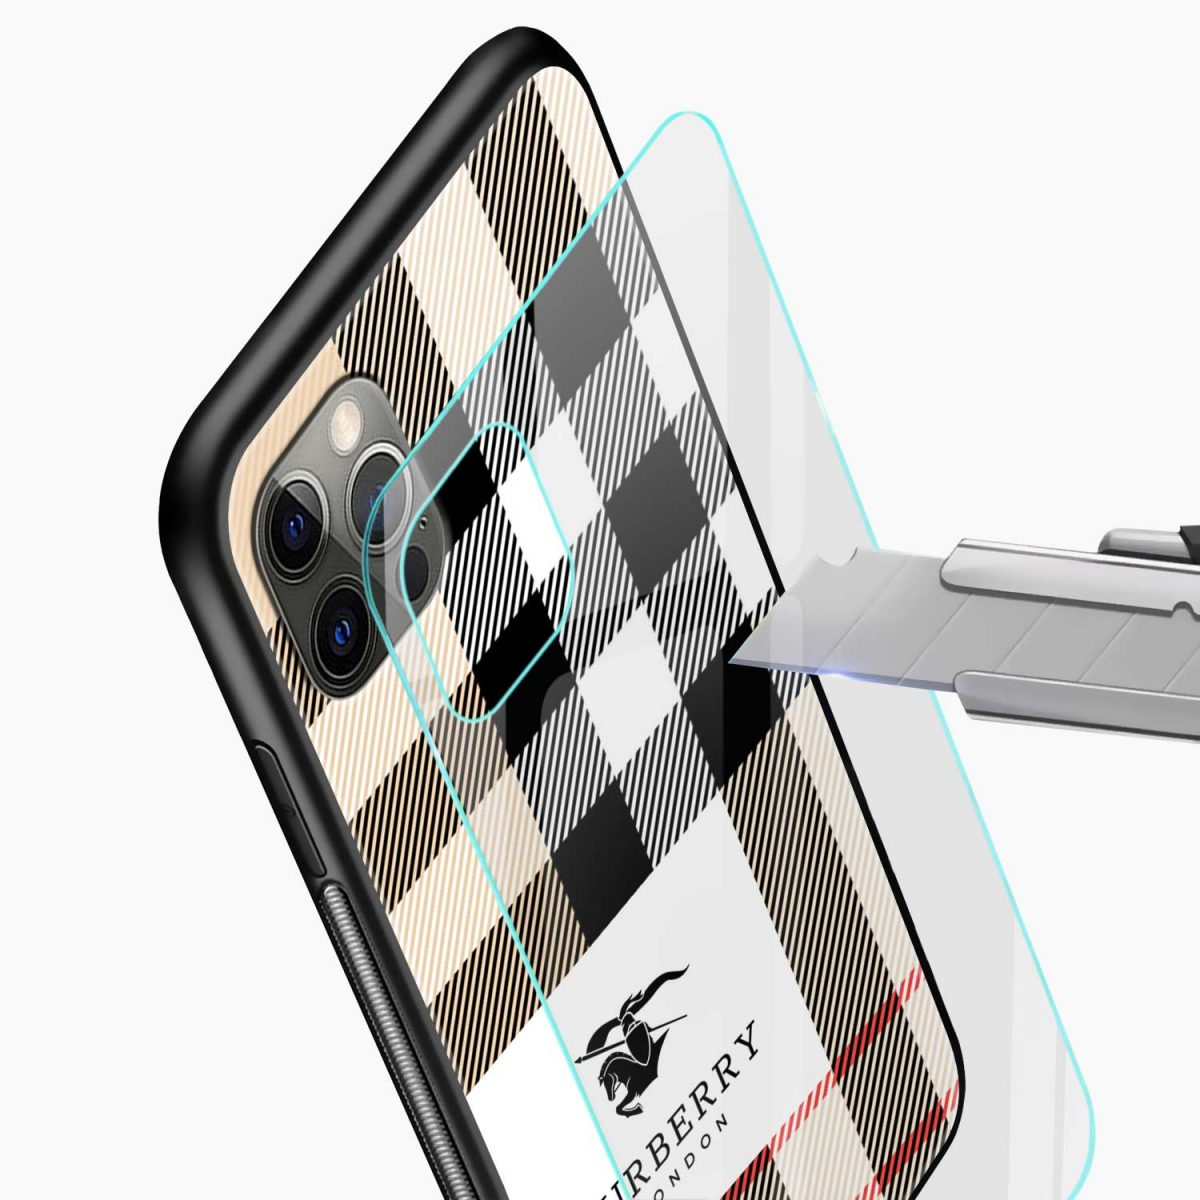 bulberry cross lines pattern iphone pro back cover glass view